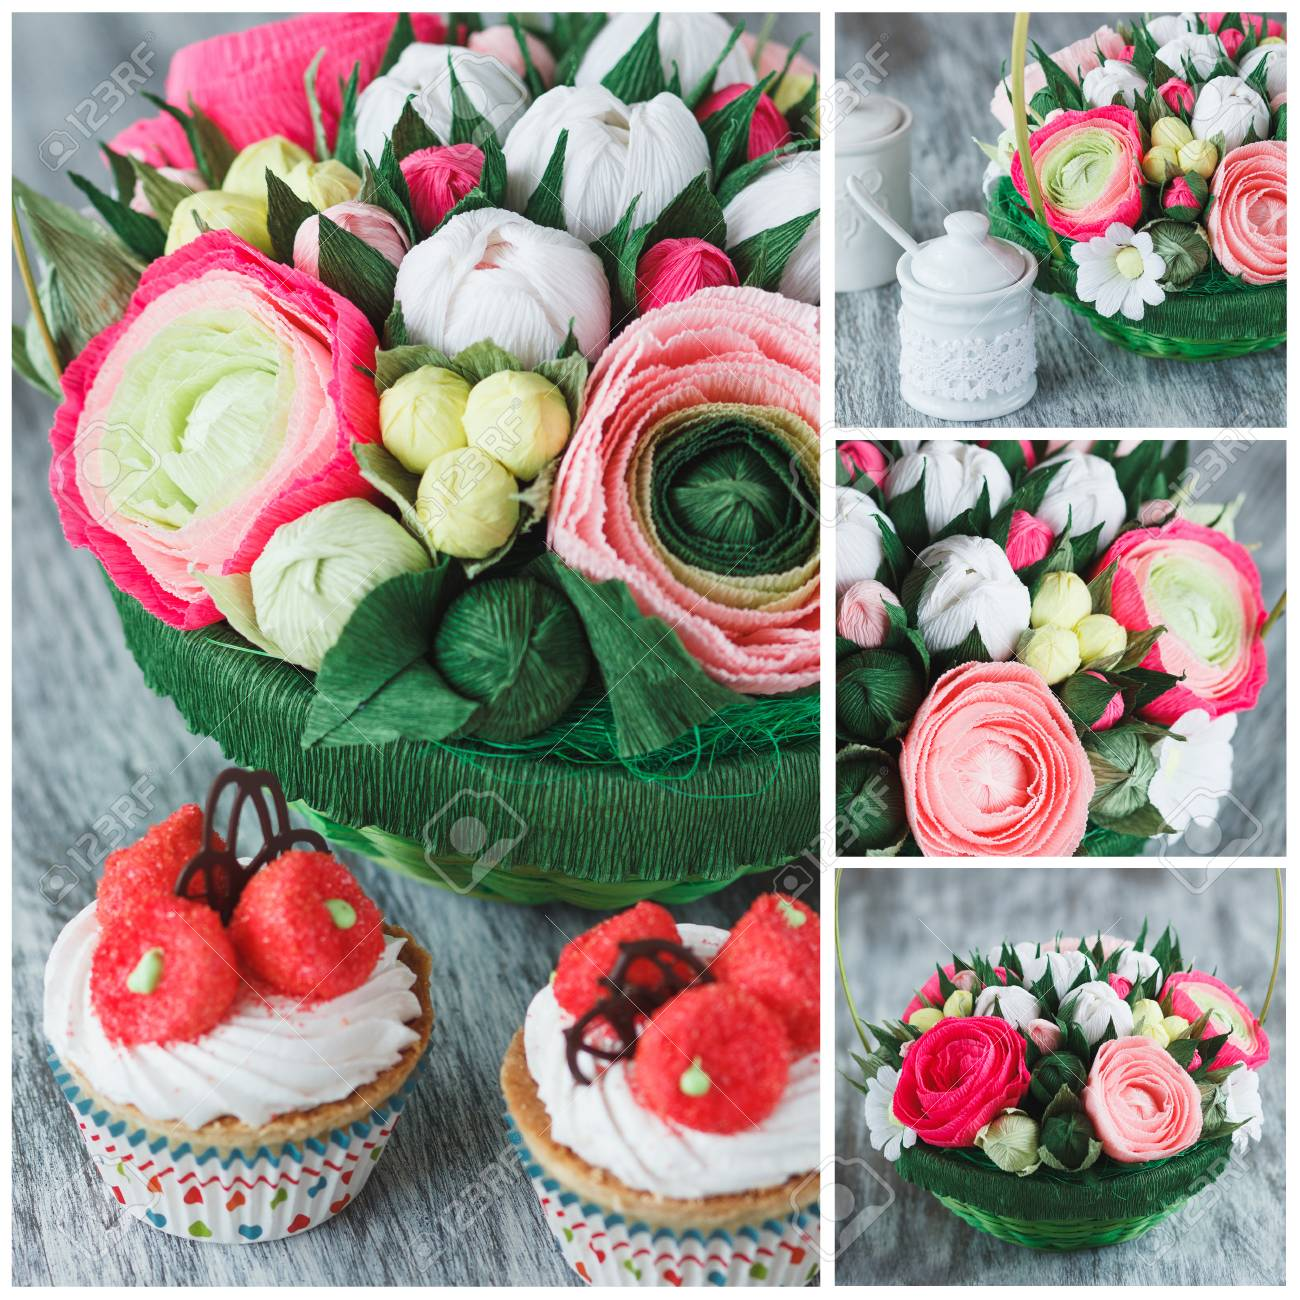 Bouquet from colored paper flowers and cupcakes soft focus bouquet from colored paper flowers and cupcakes soft focus background stock photo 98400313 izmirmasajfo